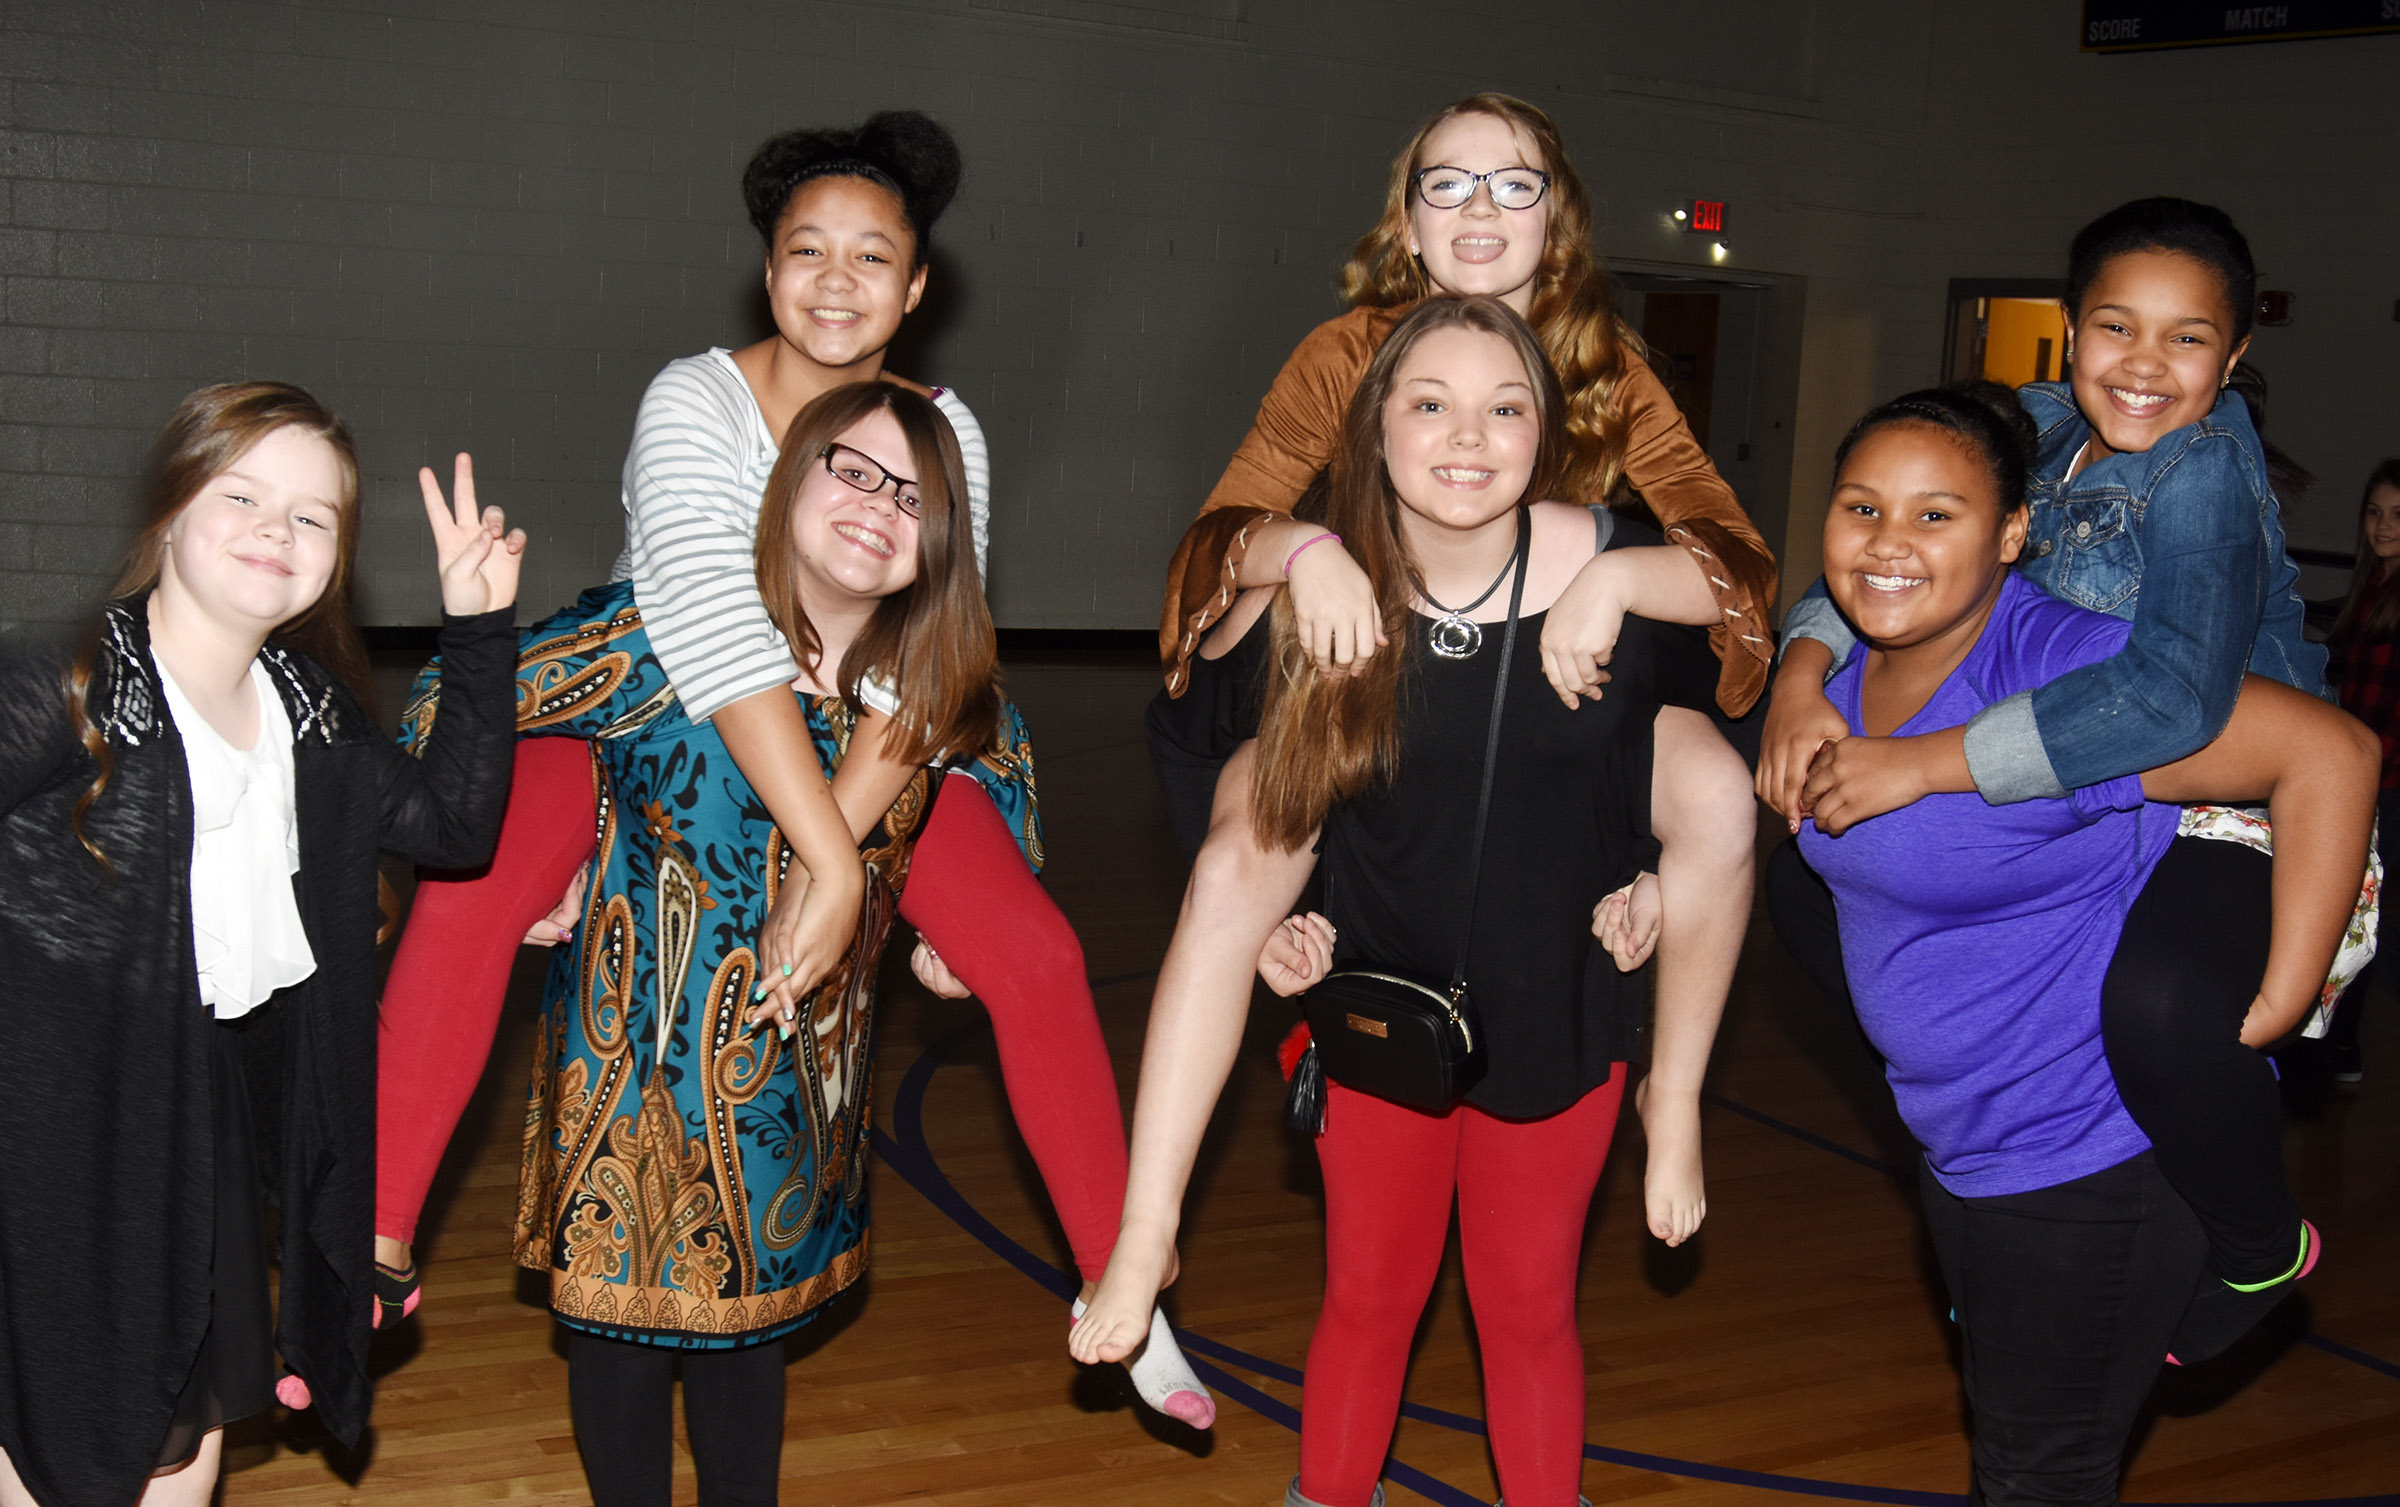 CES fifth-graders have fun at the dance. From left are Miley Hash, Keely Dicken holding Kenya Bridgewater, Piper Maggard holding Lilyan Murphy and Dezarae Washington holding Jaclyn Jackson.